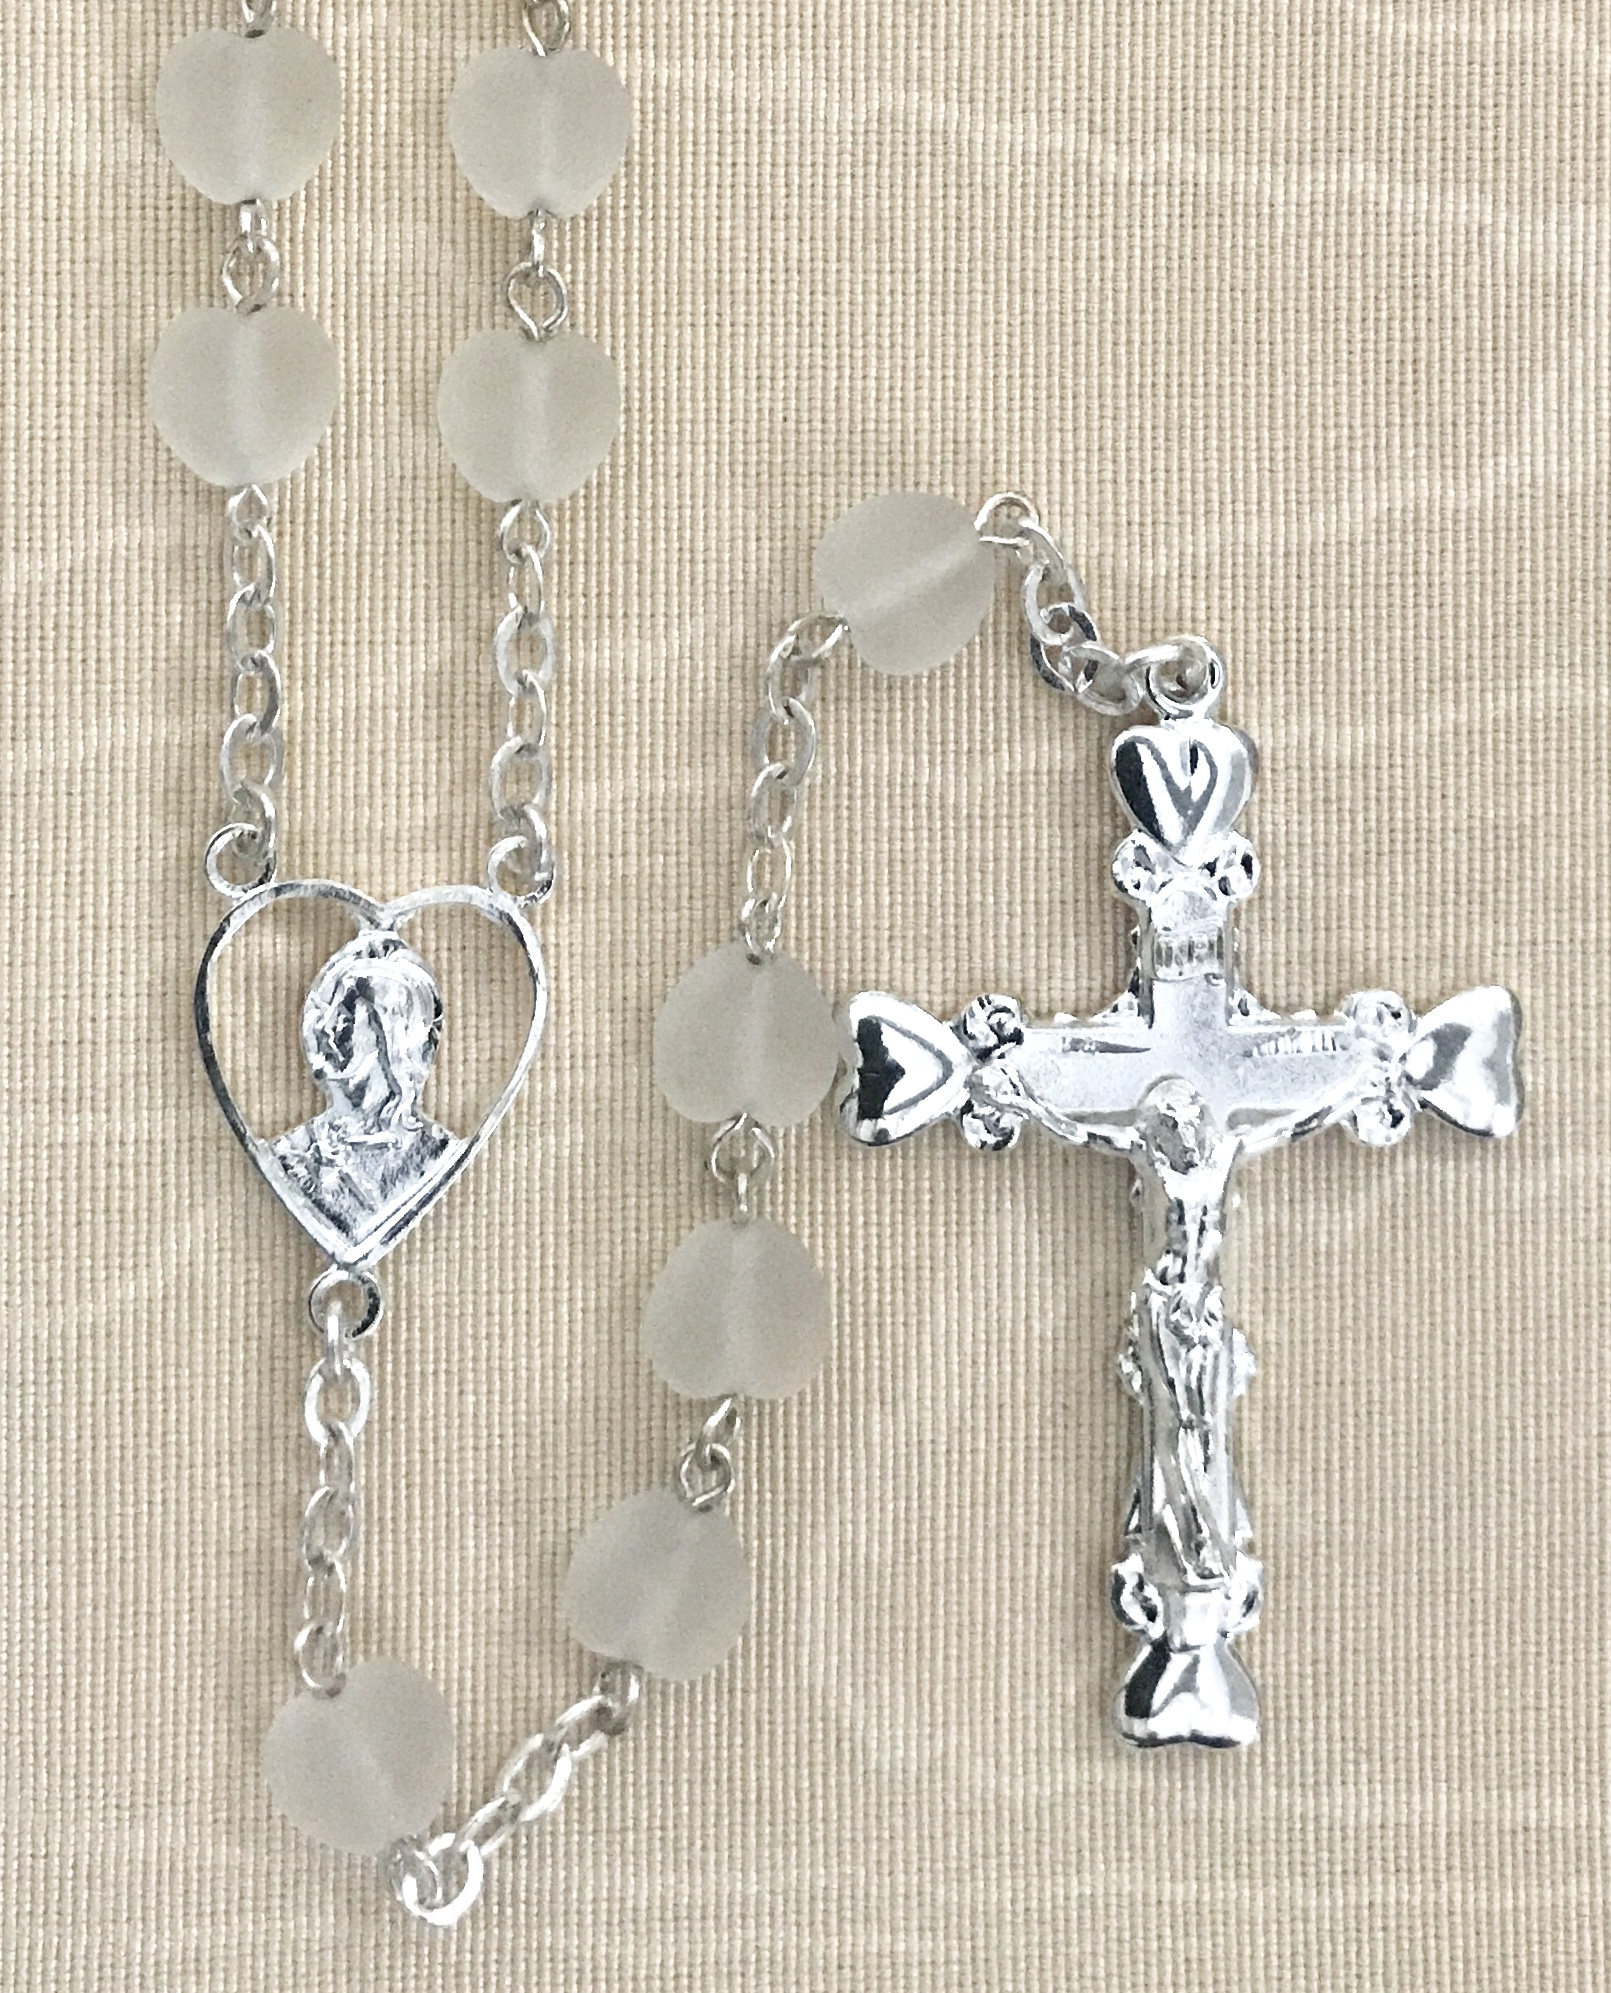 8x8mm HEART SHAPE FROSTED CRYSTAL ROSARY WITH STERLING SILVER PLATED CENTER & CRUCIFIX GIFT BOXED